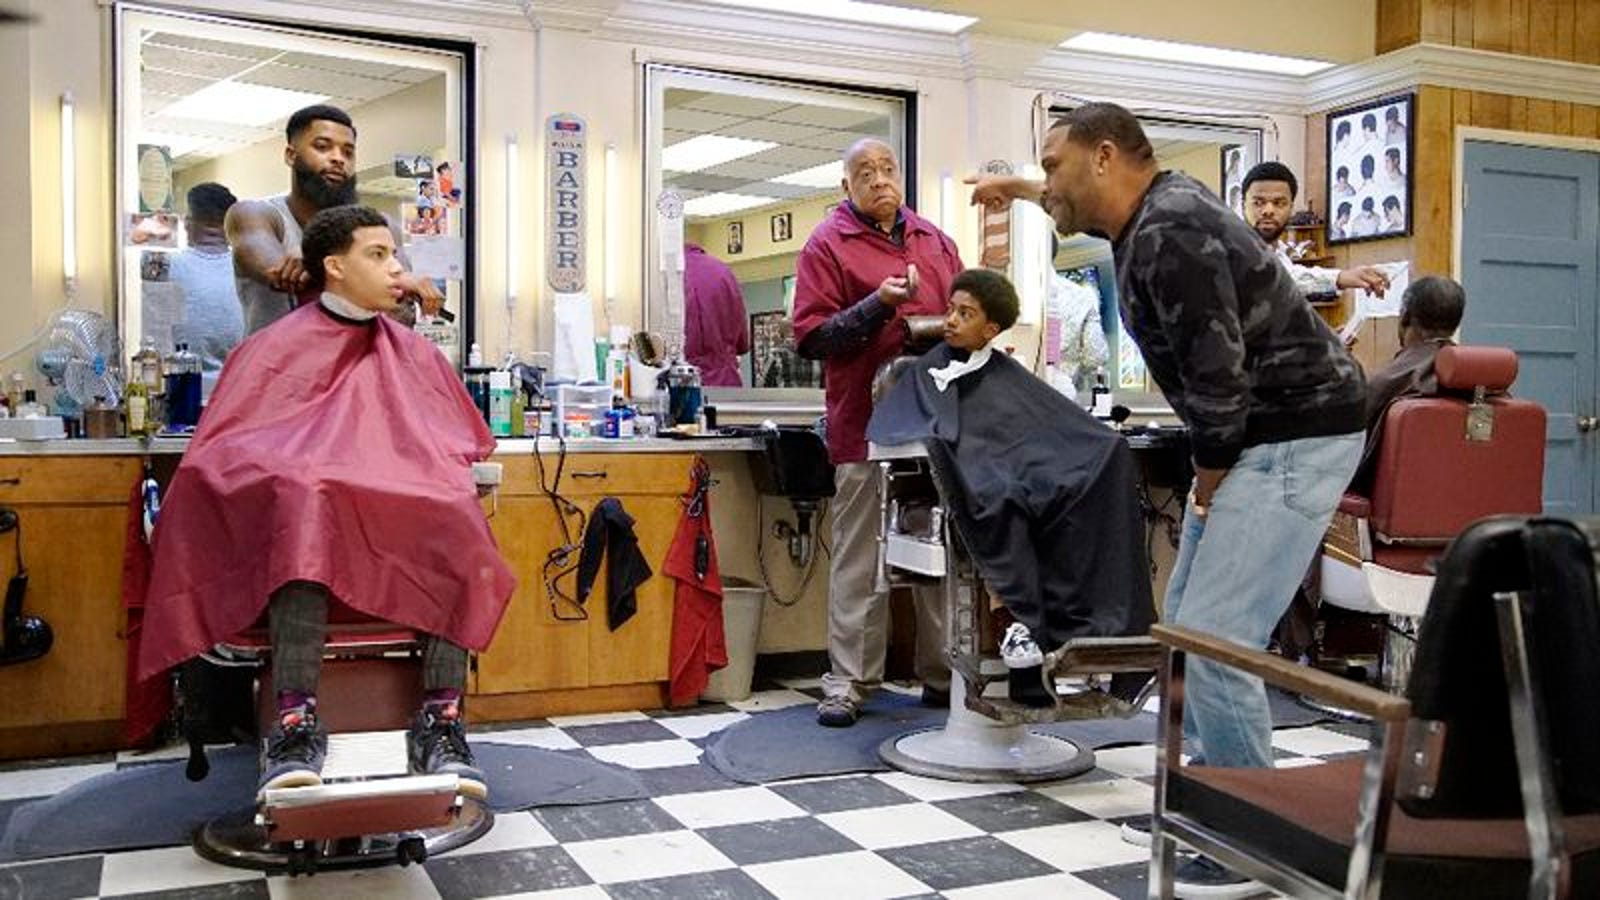 The Appropriately Titled Chop Shop Does More Harm Than Good For